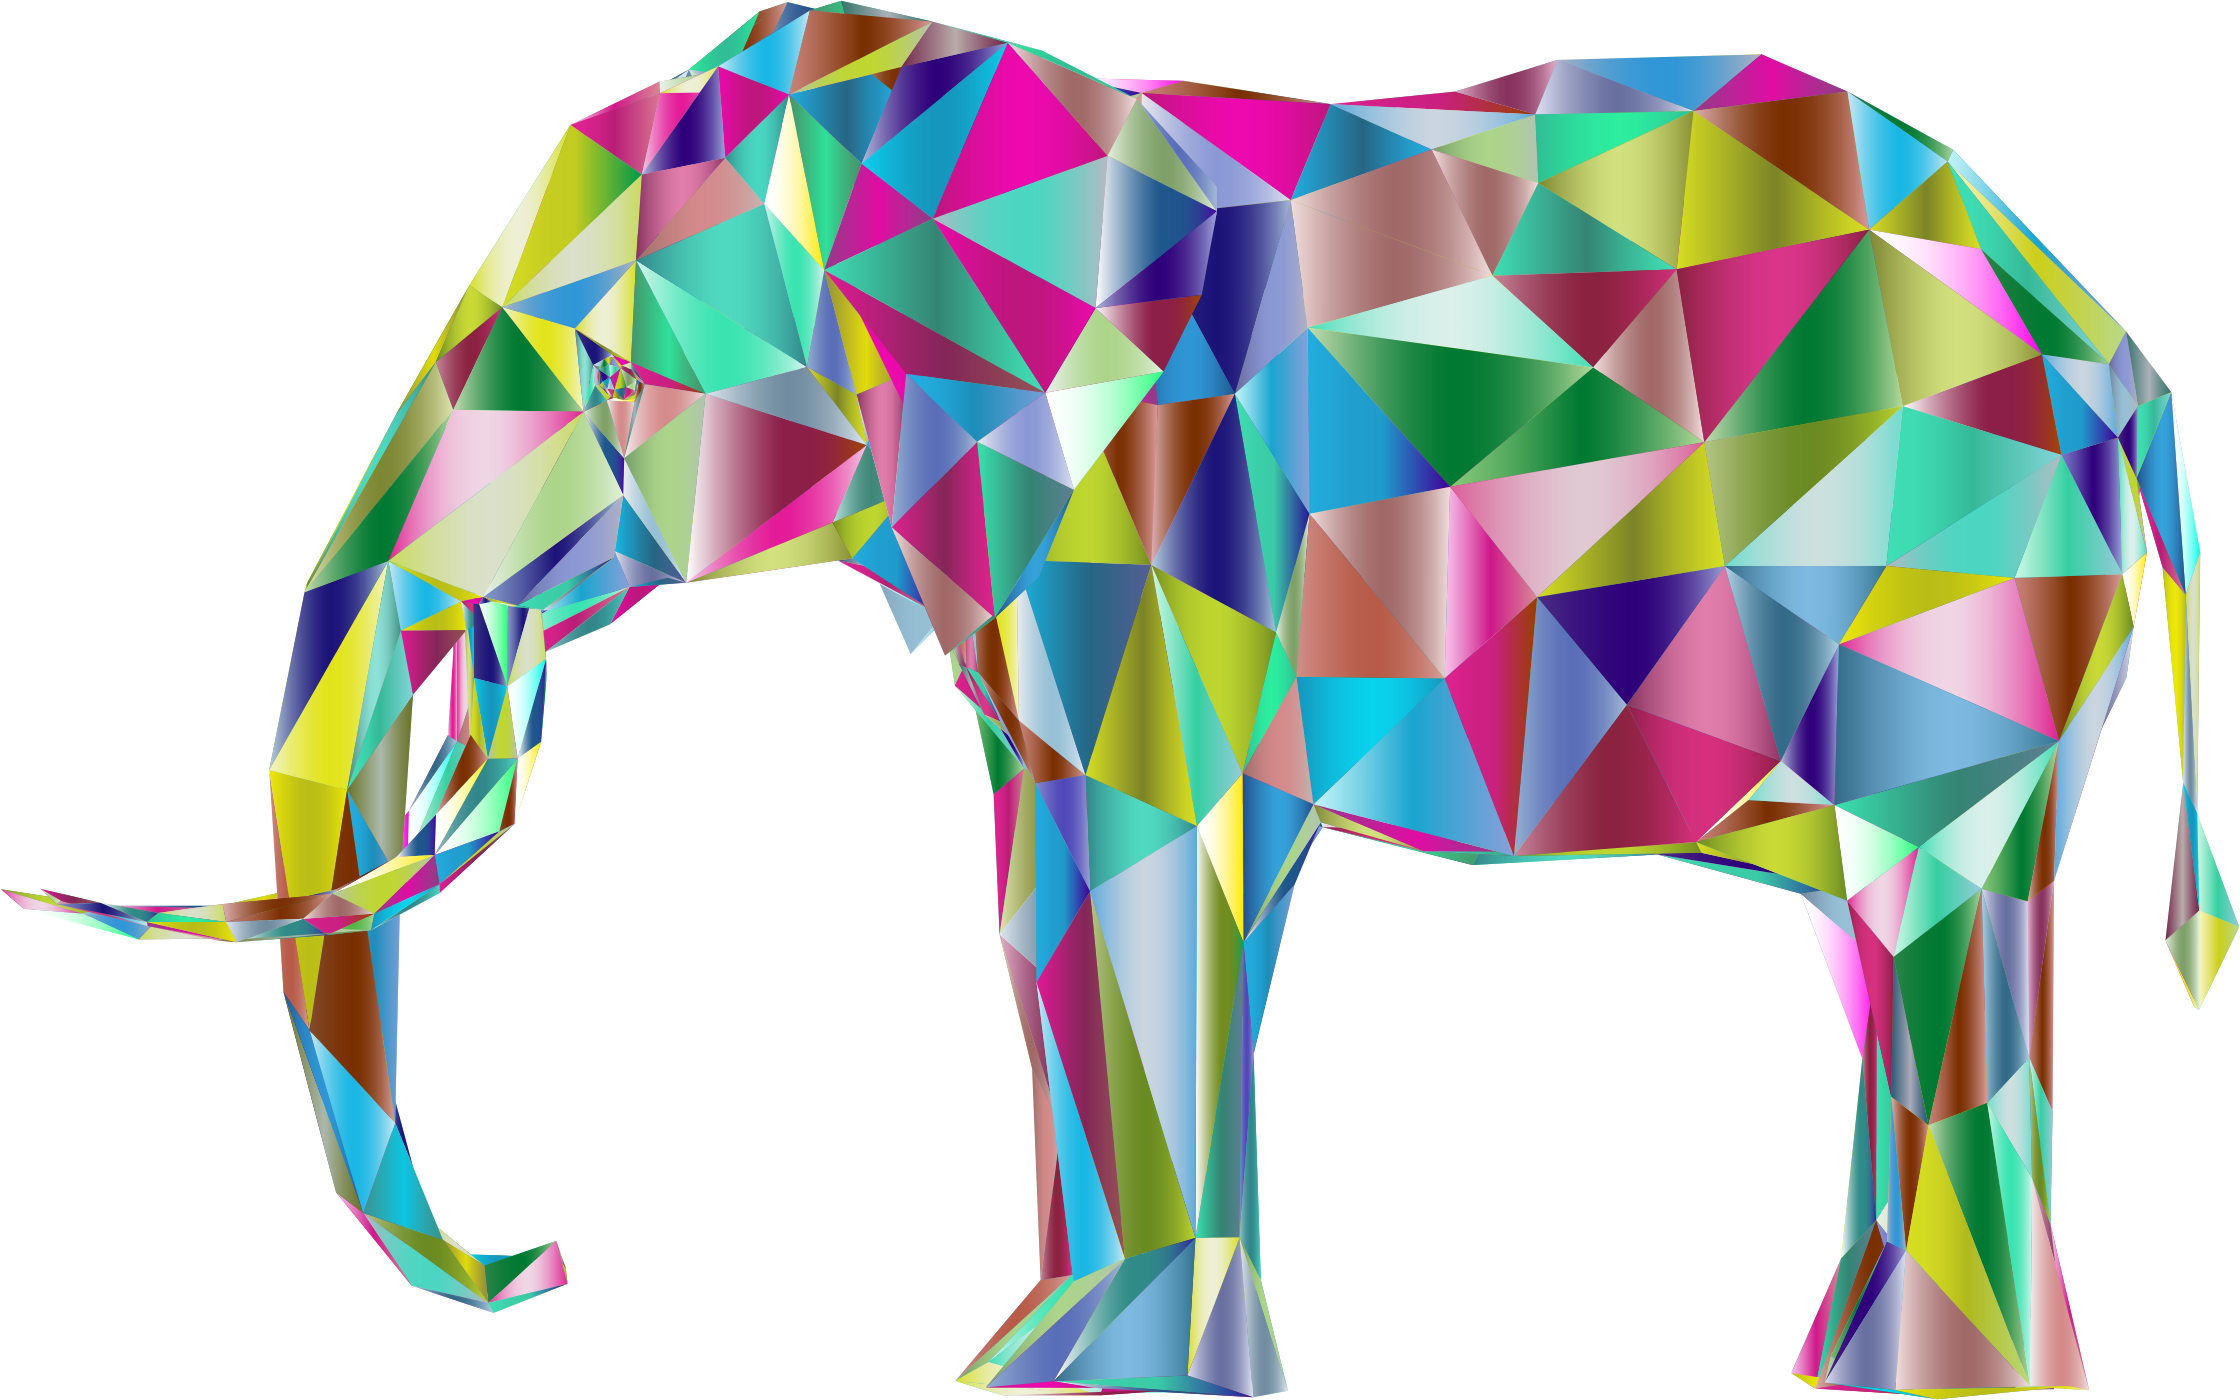 Prismatic Low Poly 3D Elephant Variation 2 by GDJ